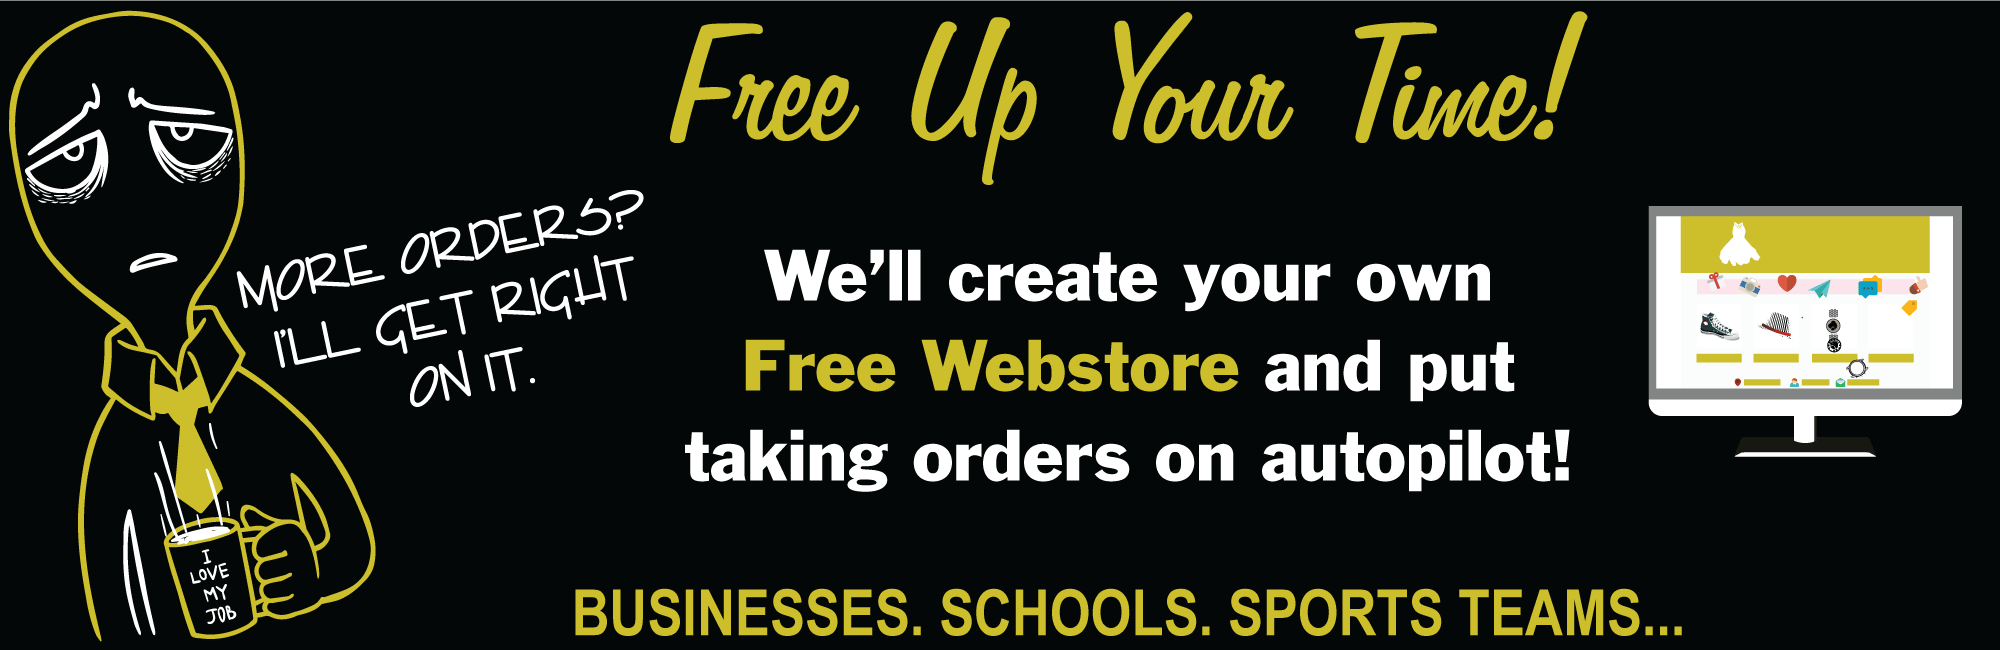 Free Online Webstore for Schools, Sports Teams, Businesses and more in Joliet, Shorewood, Plainfield, Crest Hill, Bolingbrook and Romeoville.